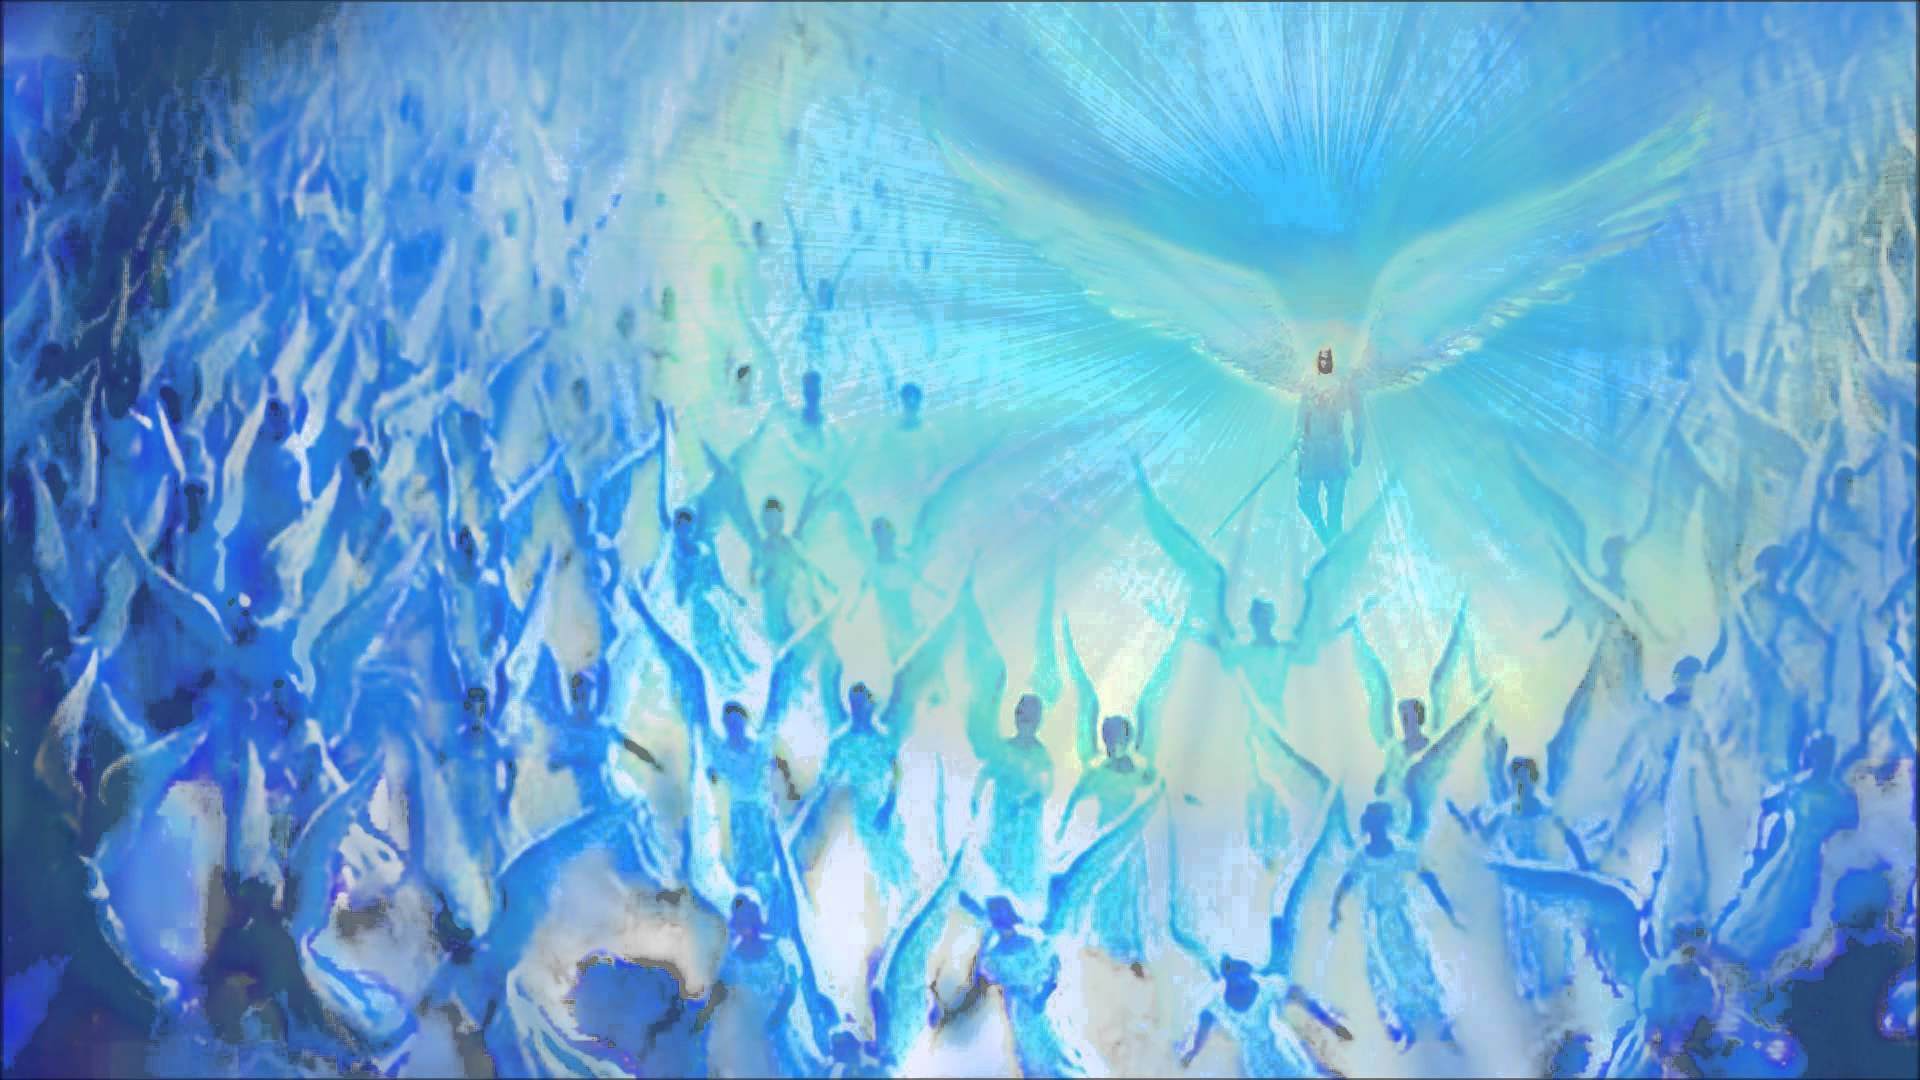 Archangel-Michael-and-His-Legions-of-Blue-Flame-Angels-Heart-of-Courage-wallpaper-wpc9002337